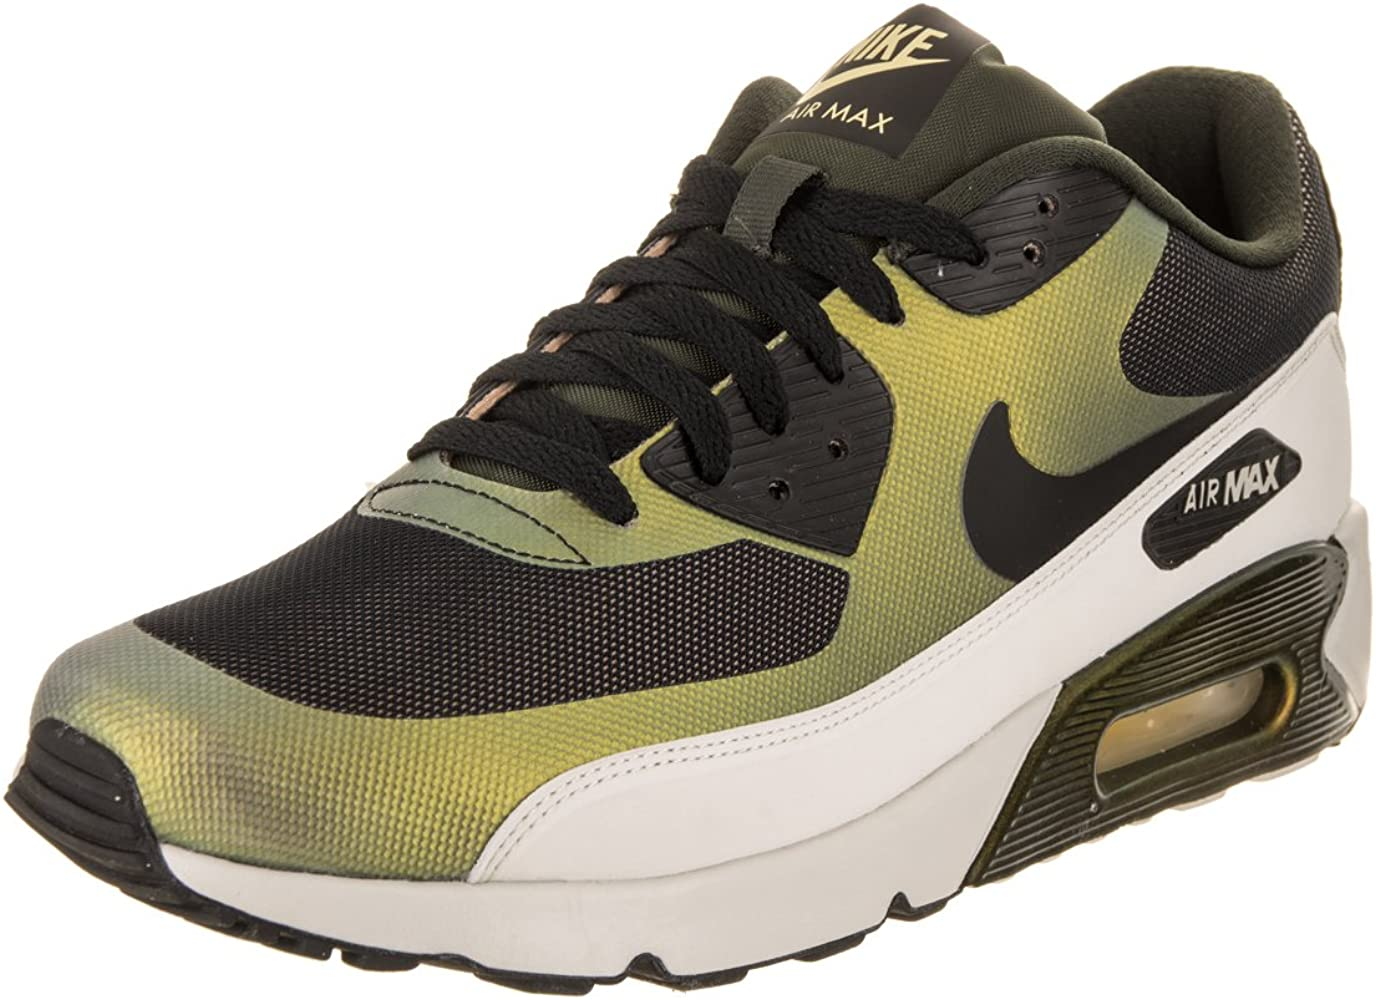 nike sale cheap, NIKE SPORTSWEAR AIR MAX 90 ULTRA 2.0